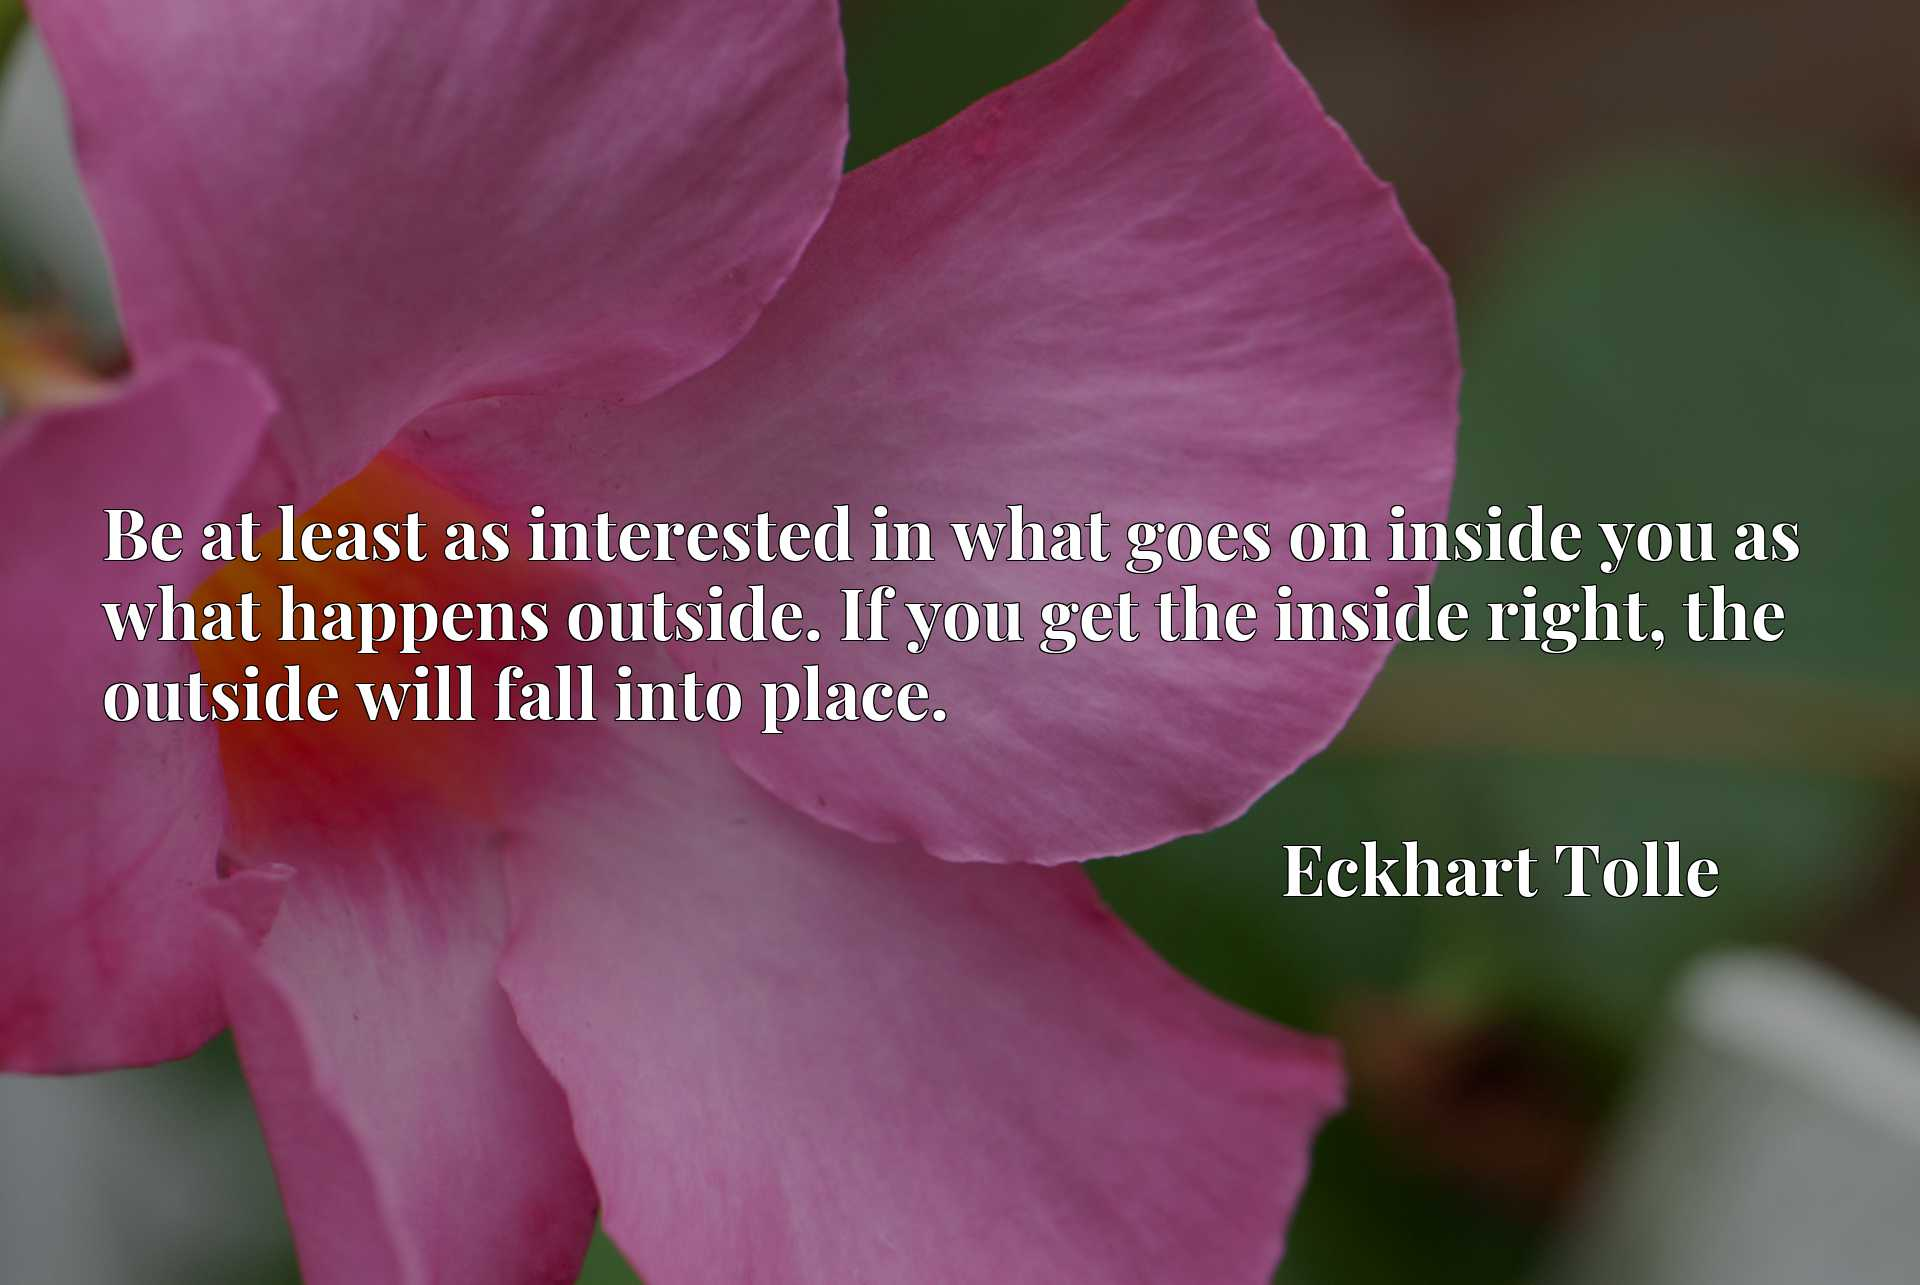 Be at least as interested in what goes on inside you as what happens outside. If you get the inside right, the outside will fall into place.